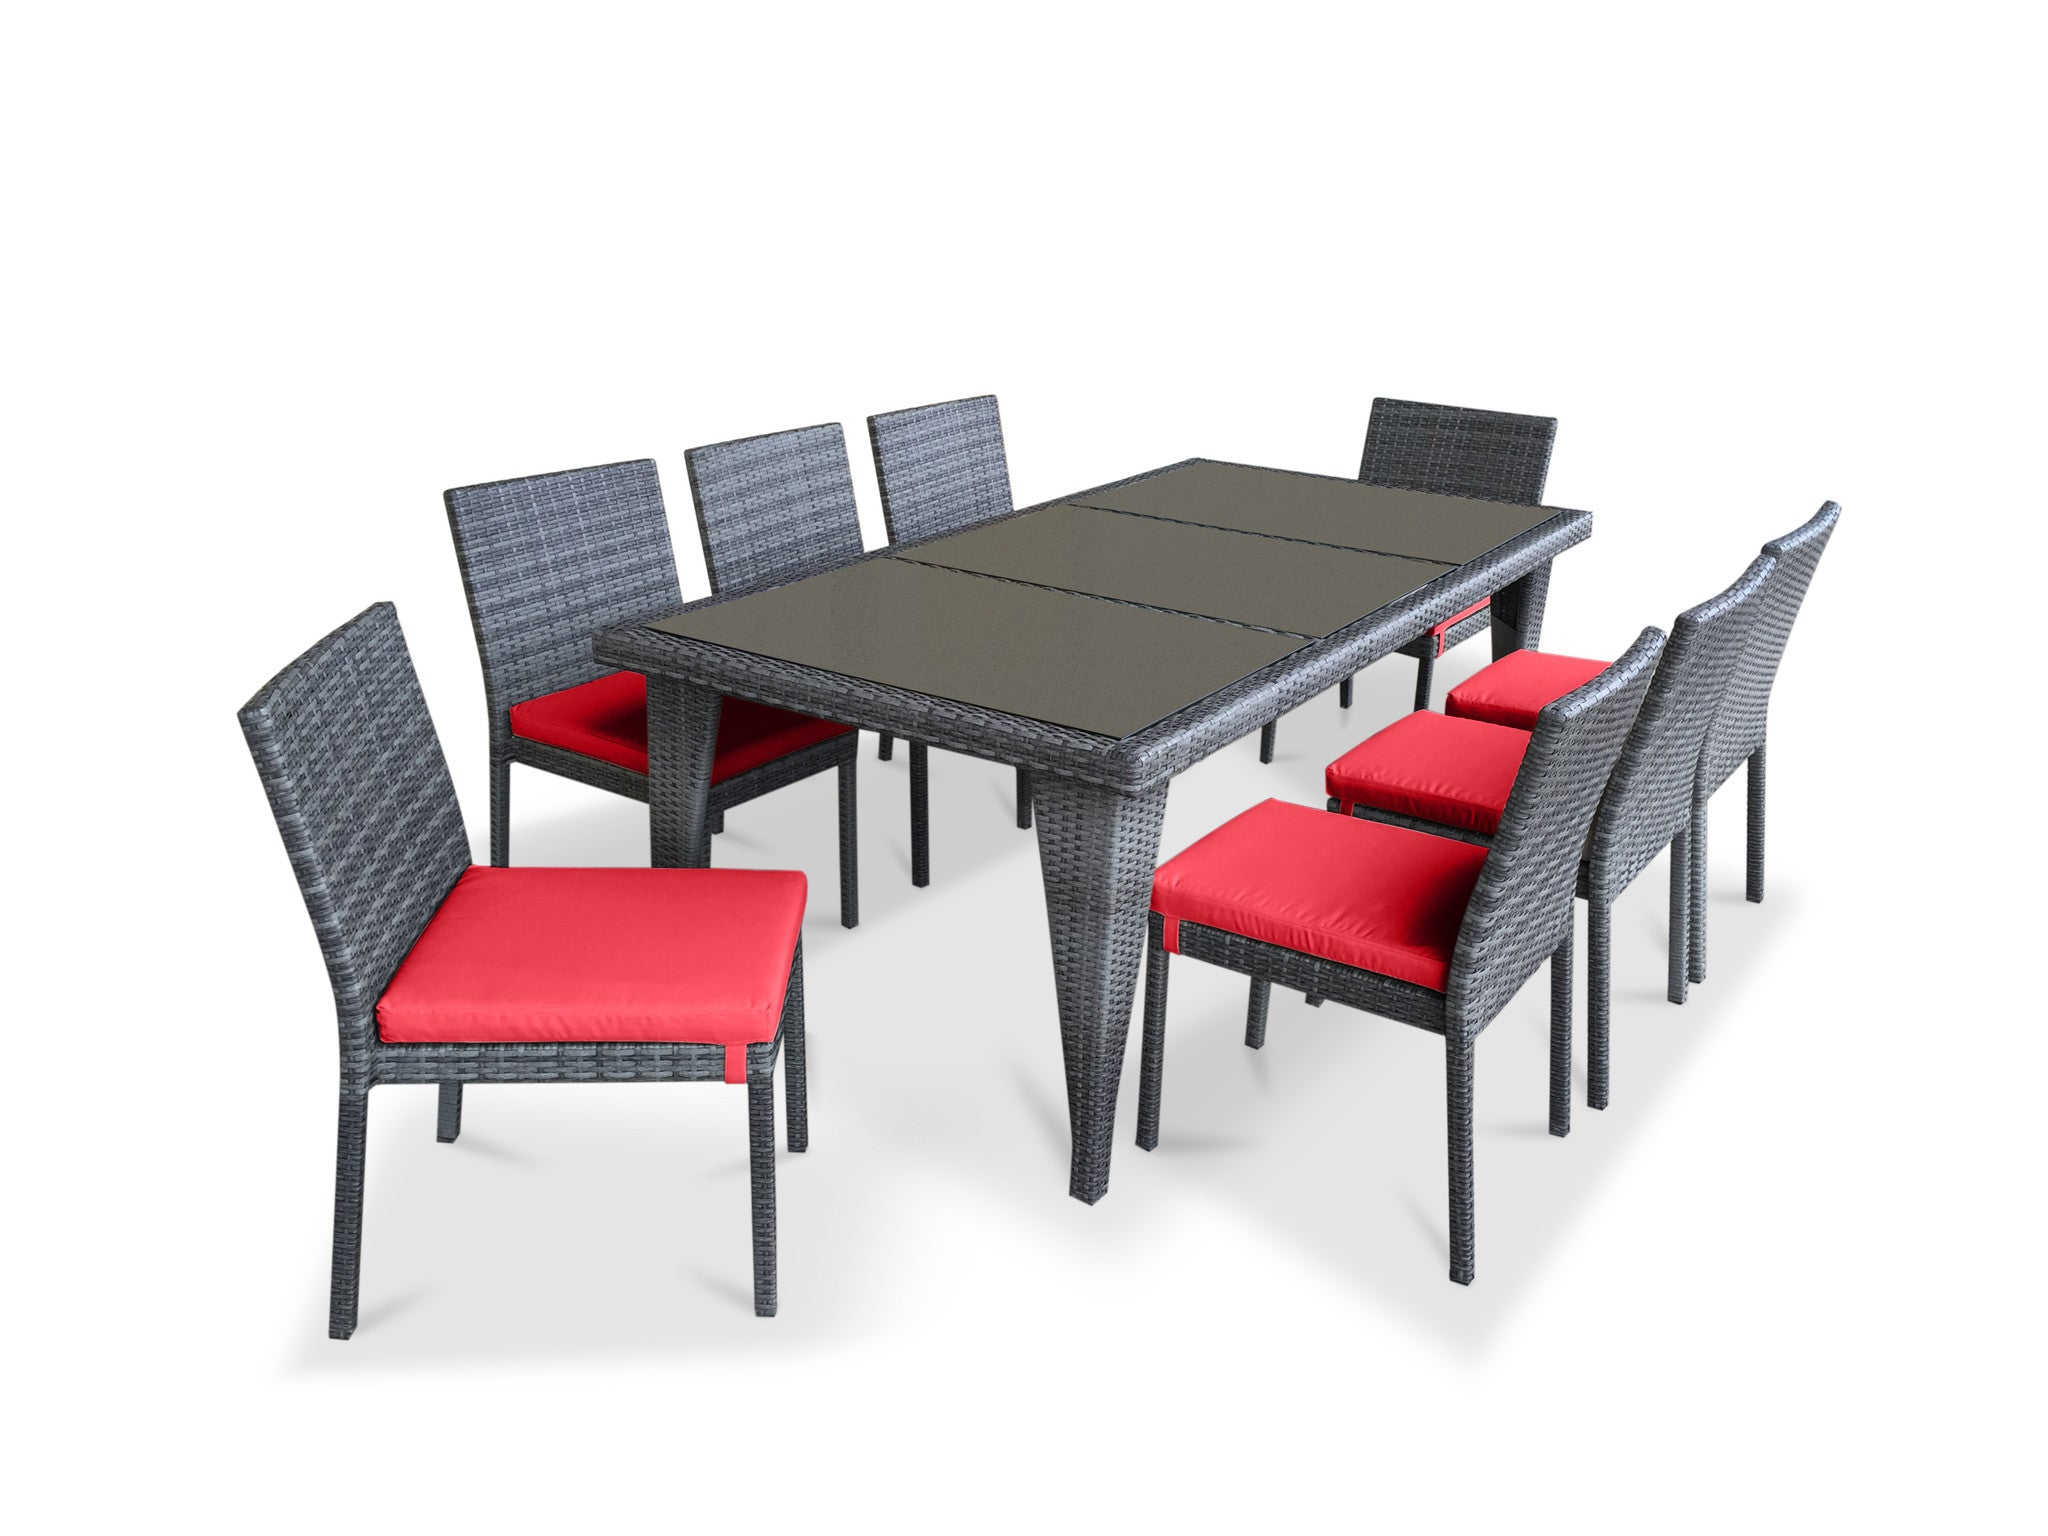 wicker outdoor dining set. 9 Piece Wicker Outdoor Patio Dining Set - Gray / Coral Red